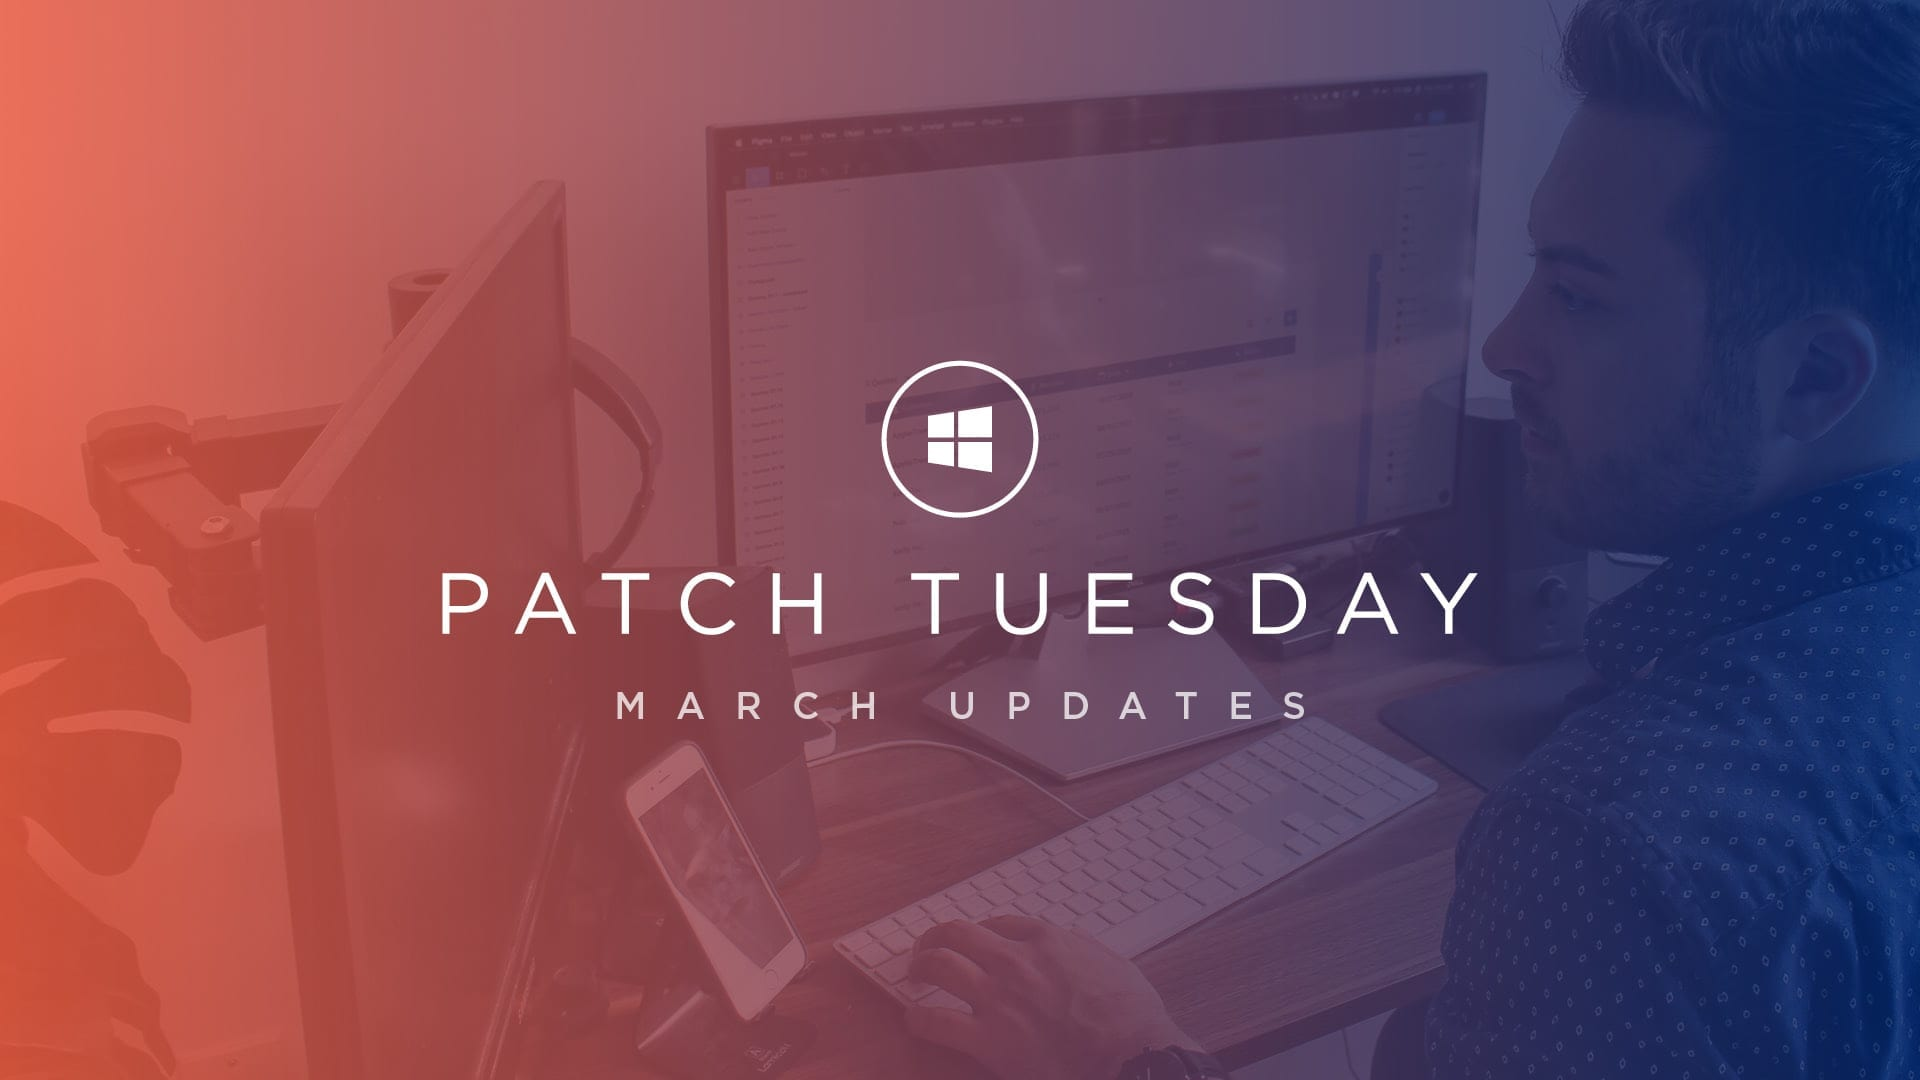 Patch Tuesday: March Updates